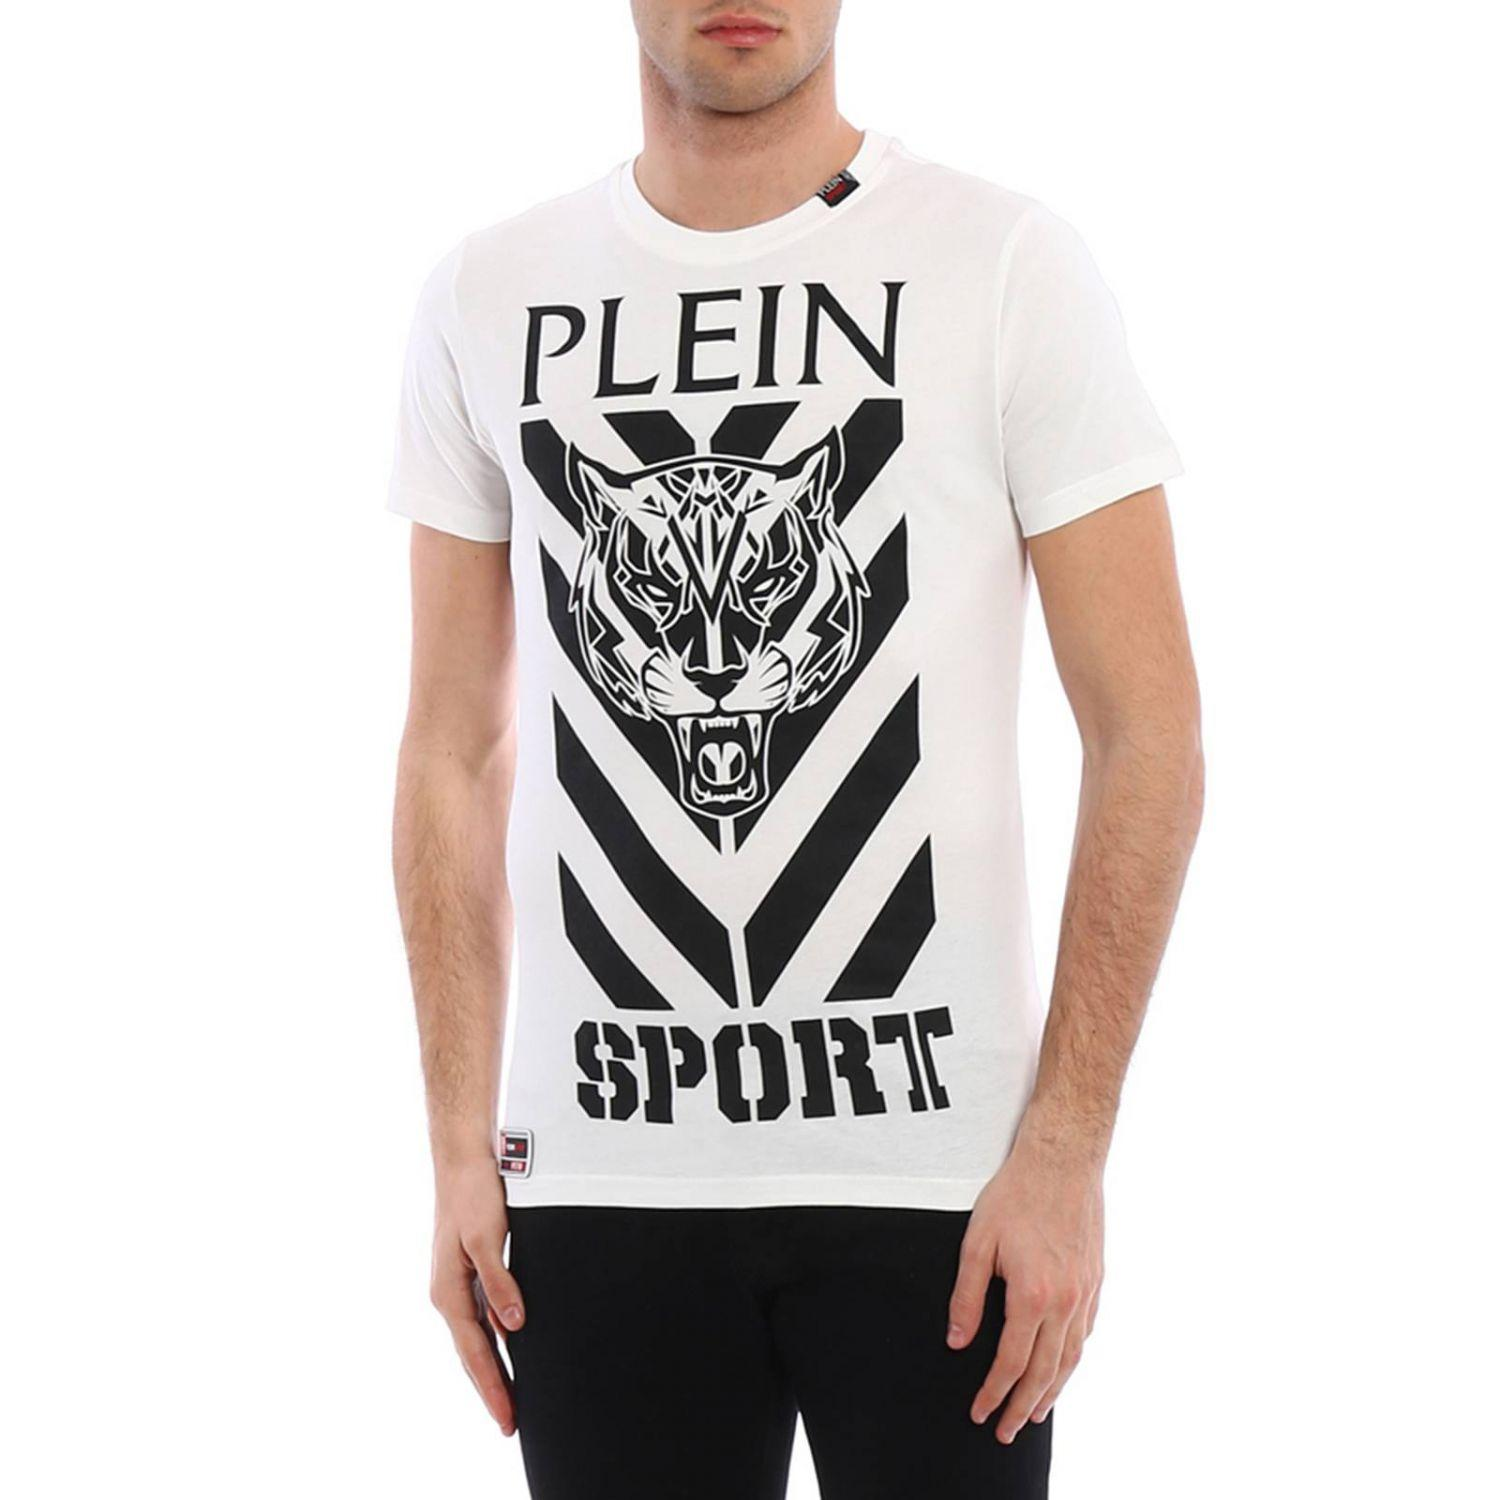 philipp men Shop designer items by philipp plein online choose the perfect piece for you: easy, quick returns and secure payment.